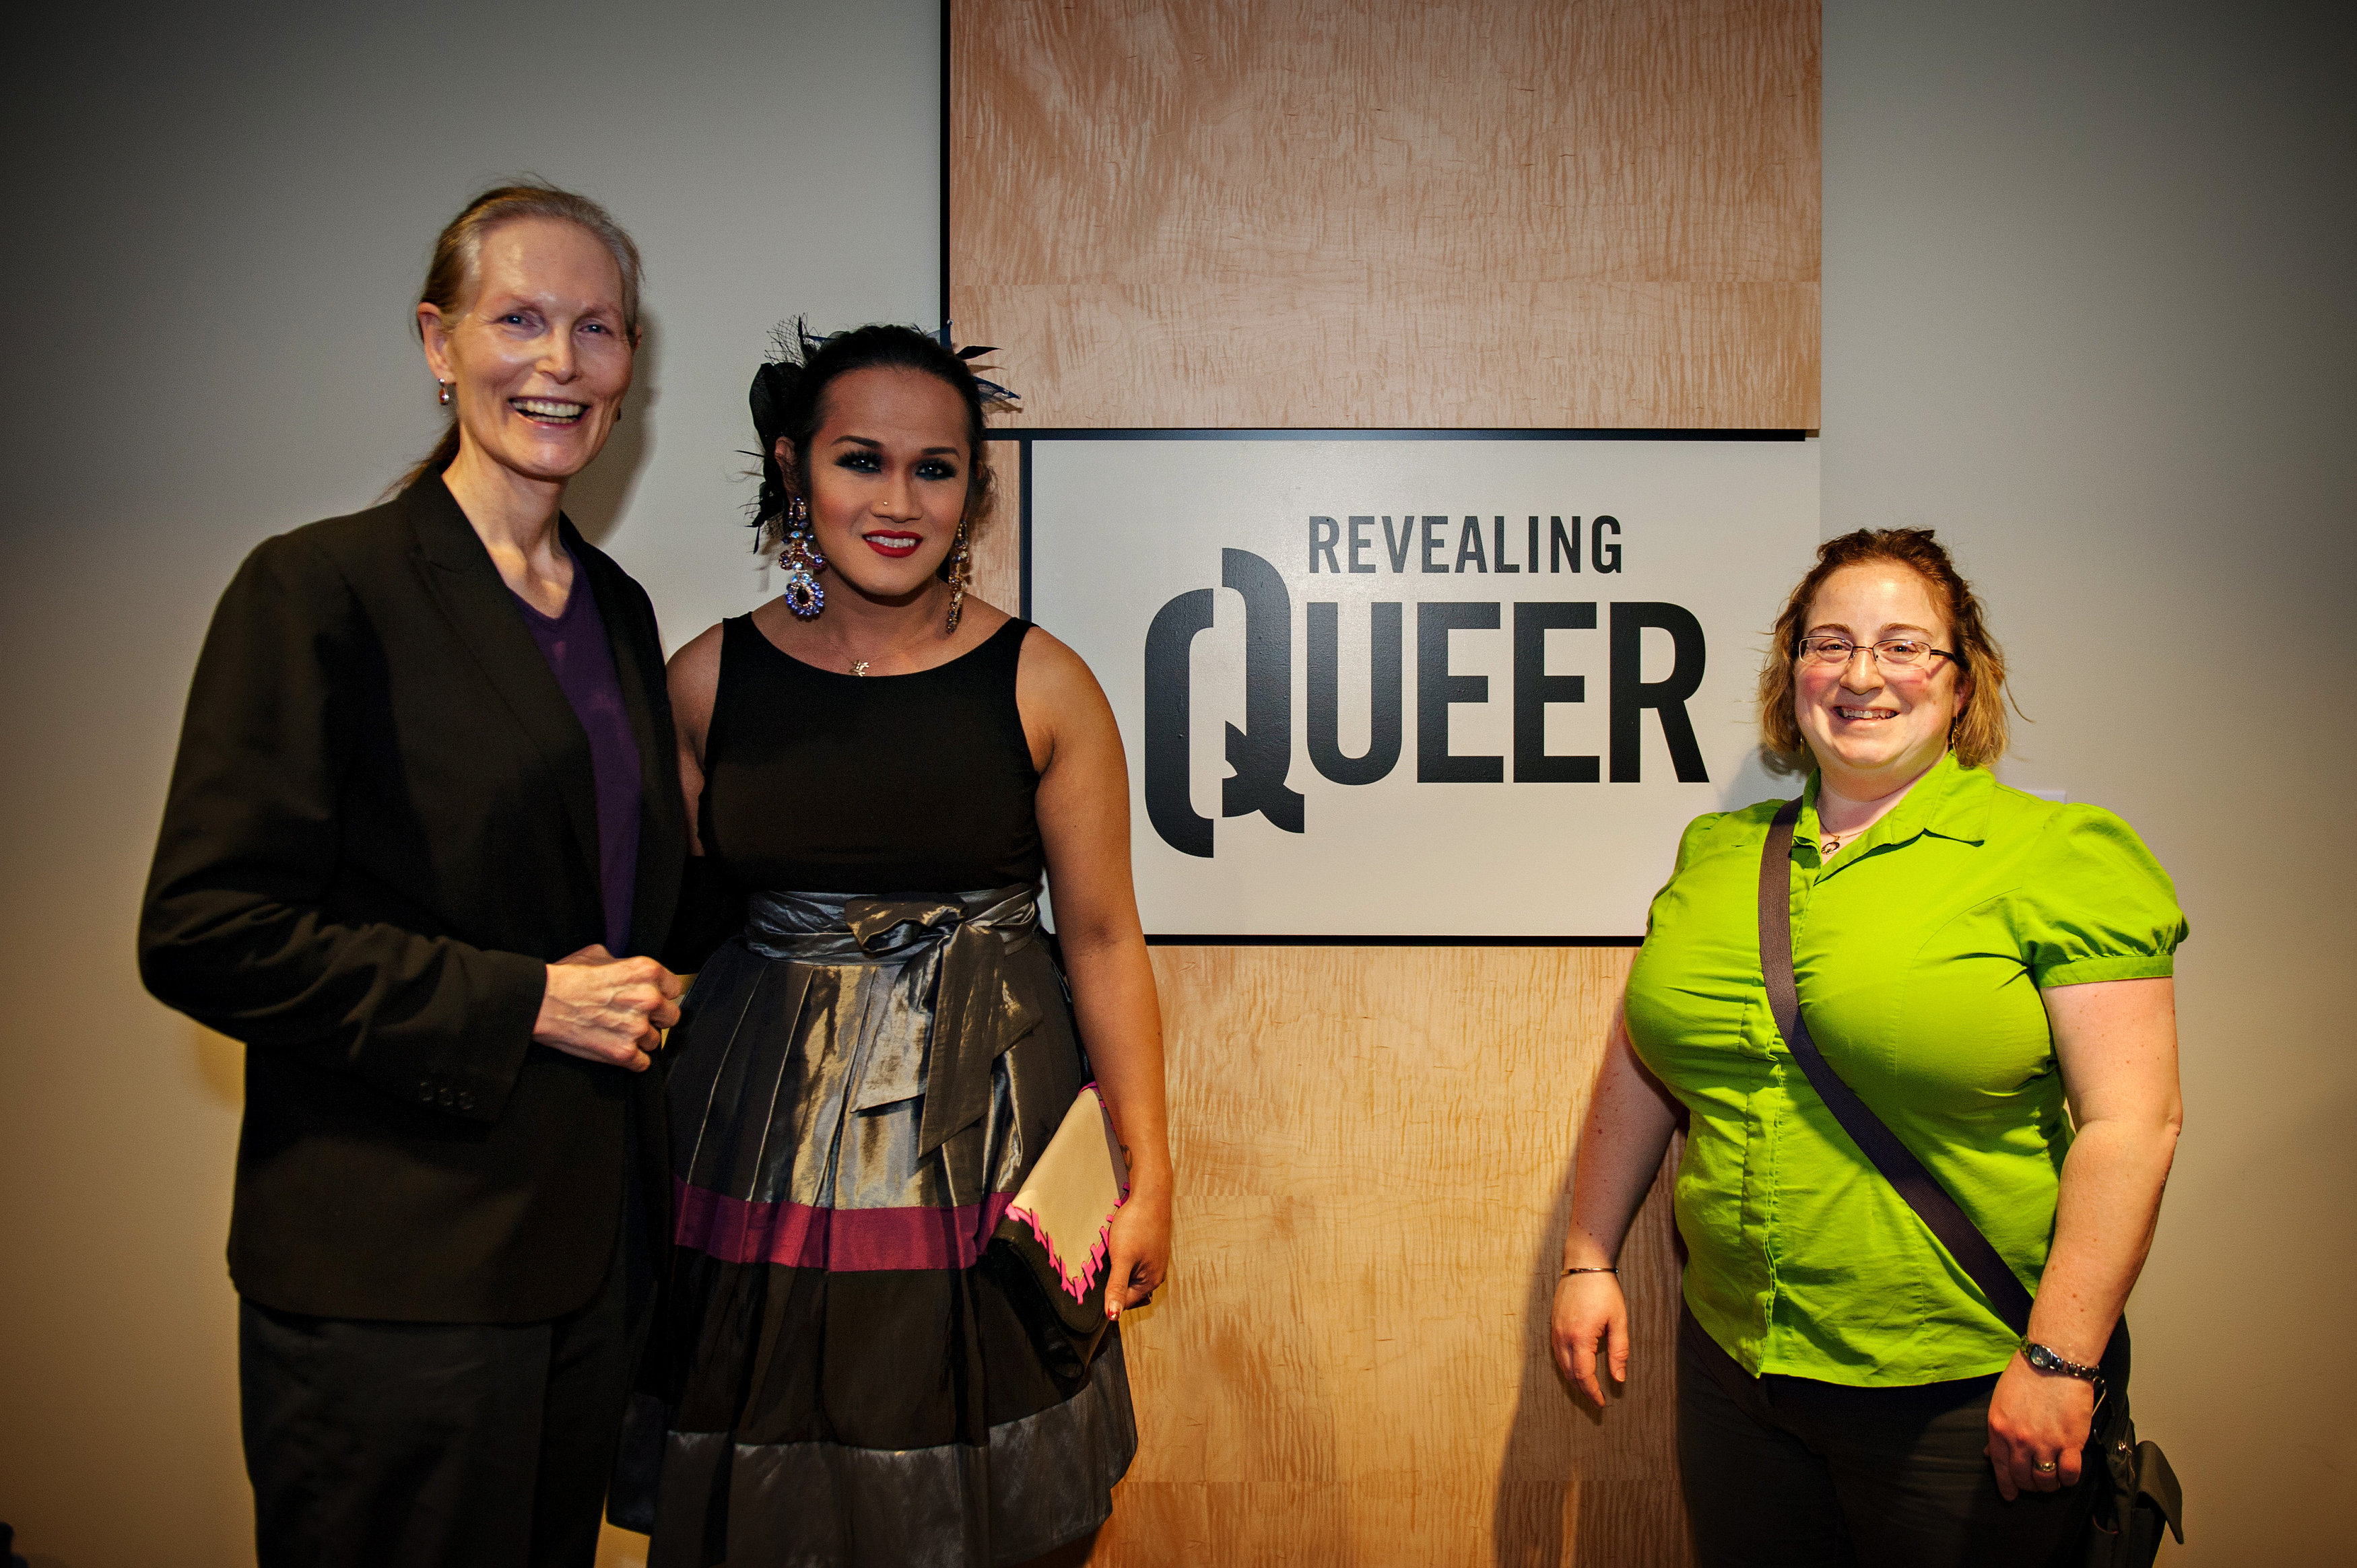 Interview with the Cofounder of Revealing Queer at MOHAI